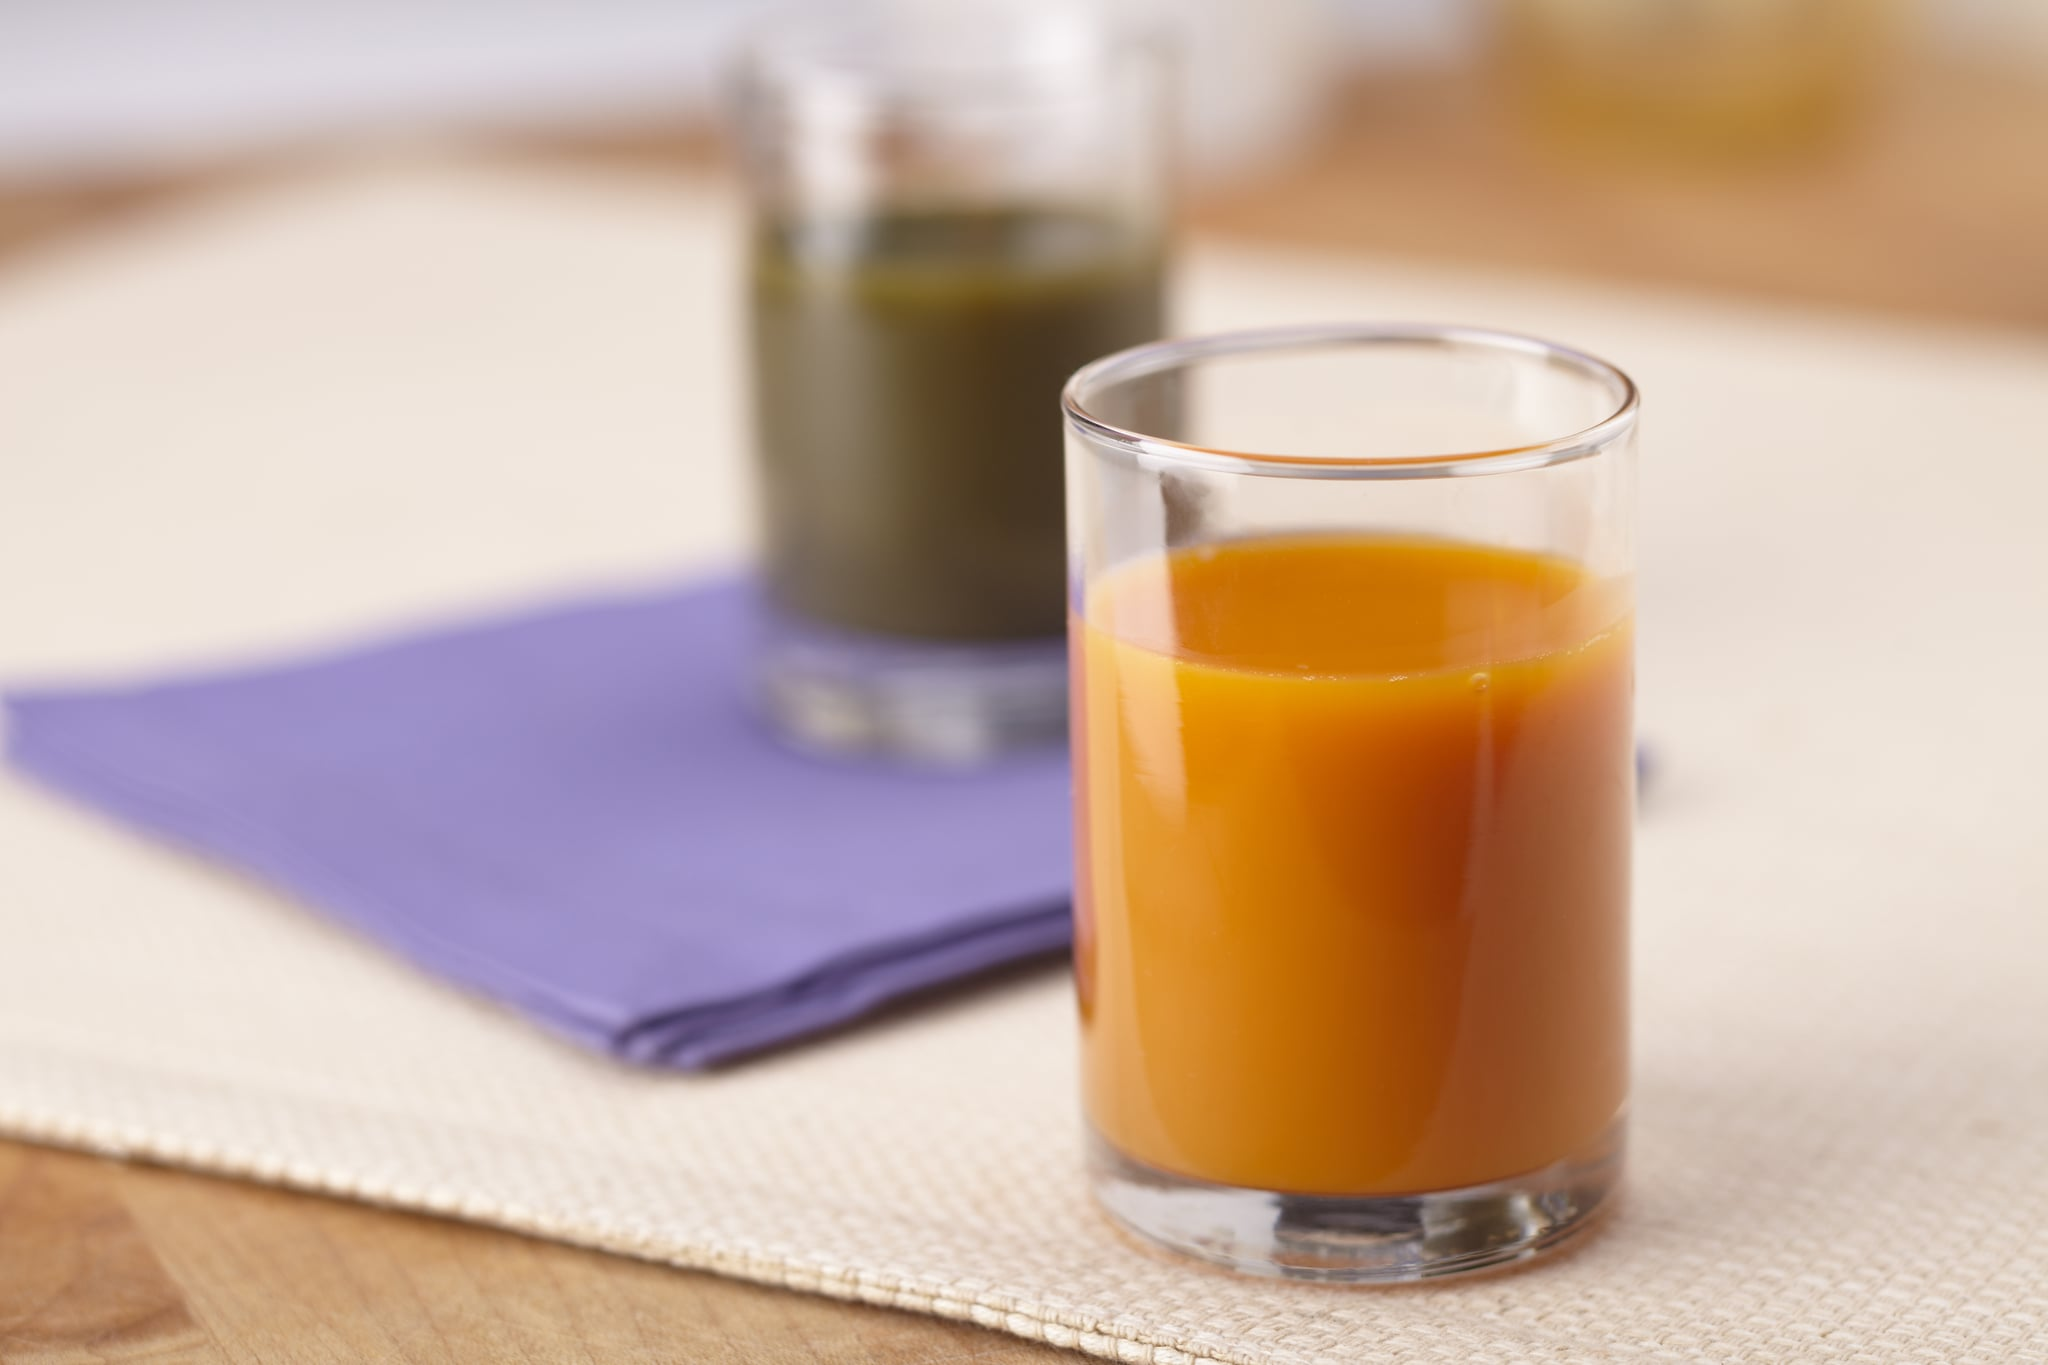 Food, Food And Drink, Juice, Carrot, Shot Glass, Carrot Juice, Wheatgrass Juice, Wheatgrass, Vegetable, Vegetarian,